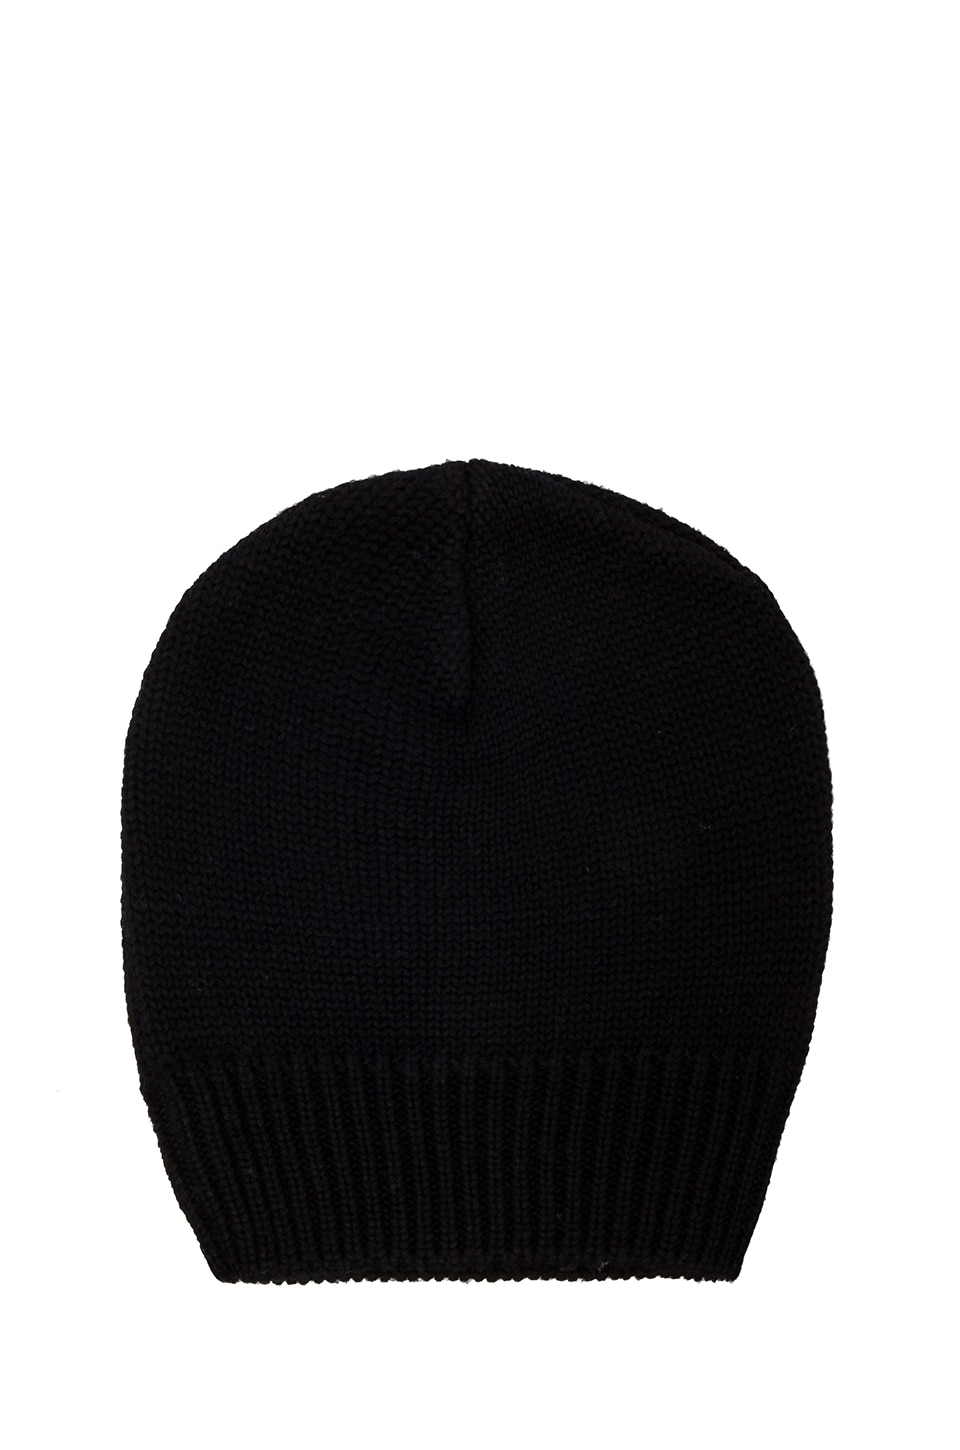 Gents Co. Beanie in Black